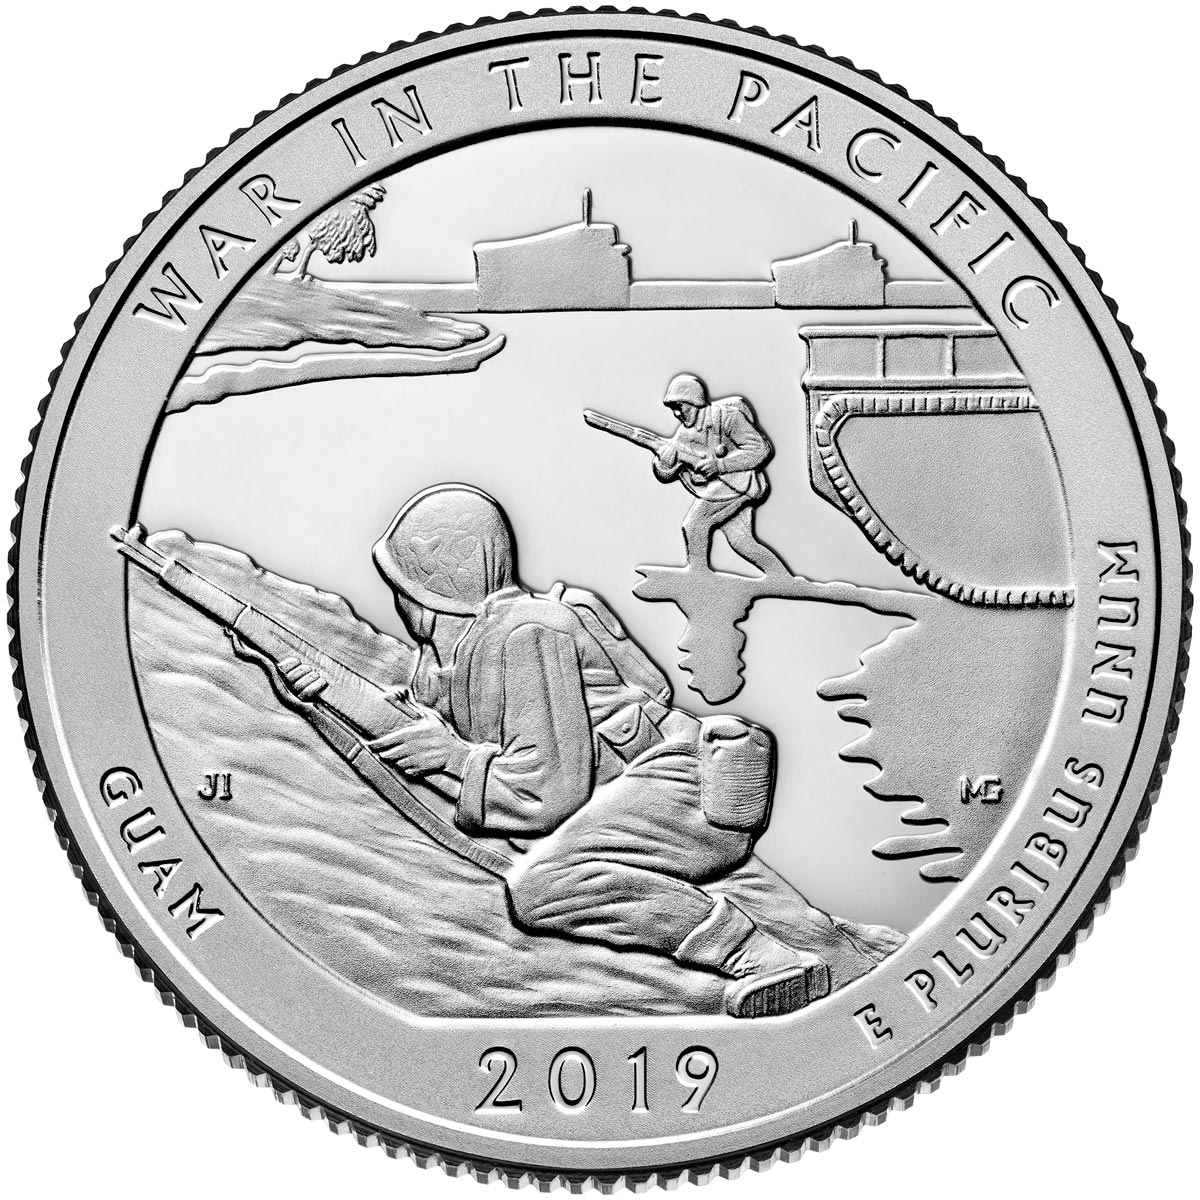 Image of 25 cents coin - War in the Pacific National Historical Park | USA 2019.  The Copper–Nickel (CuNi) coin is of Proof, BU, UNC quality.